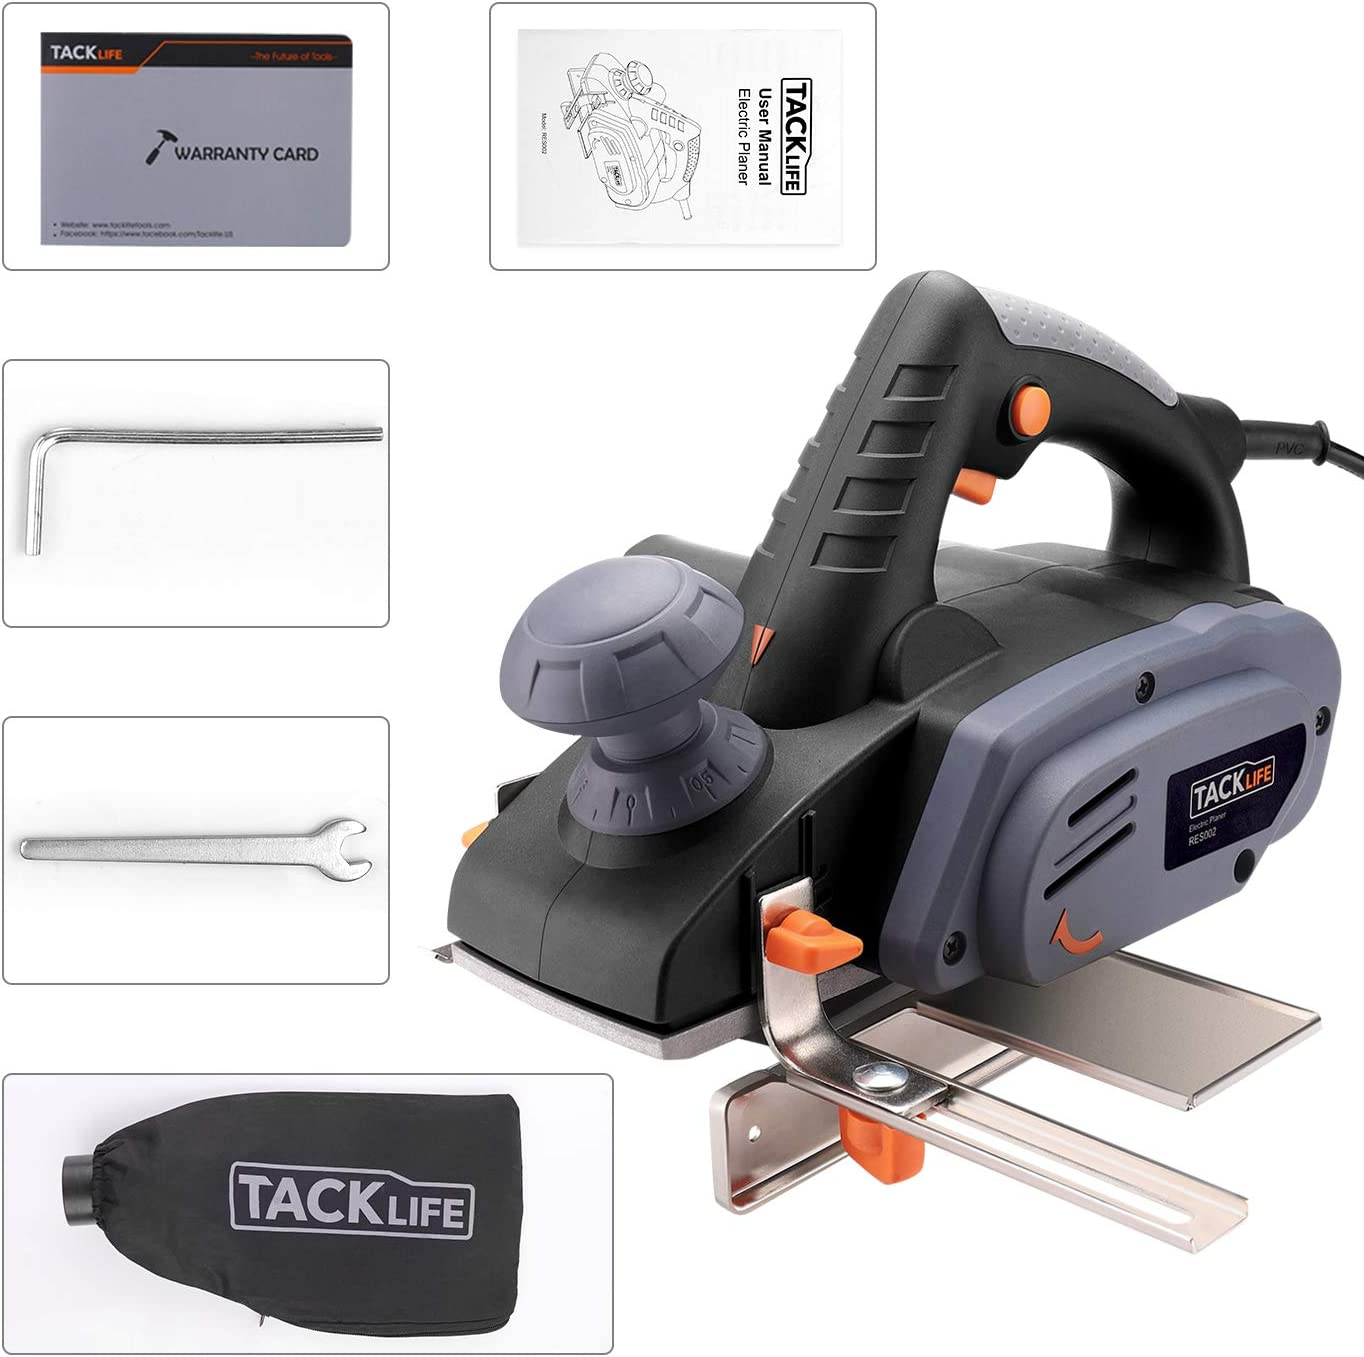 TACKLIFE RES002 Electric Hand Planers product image 9